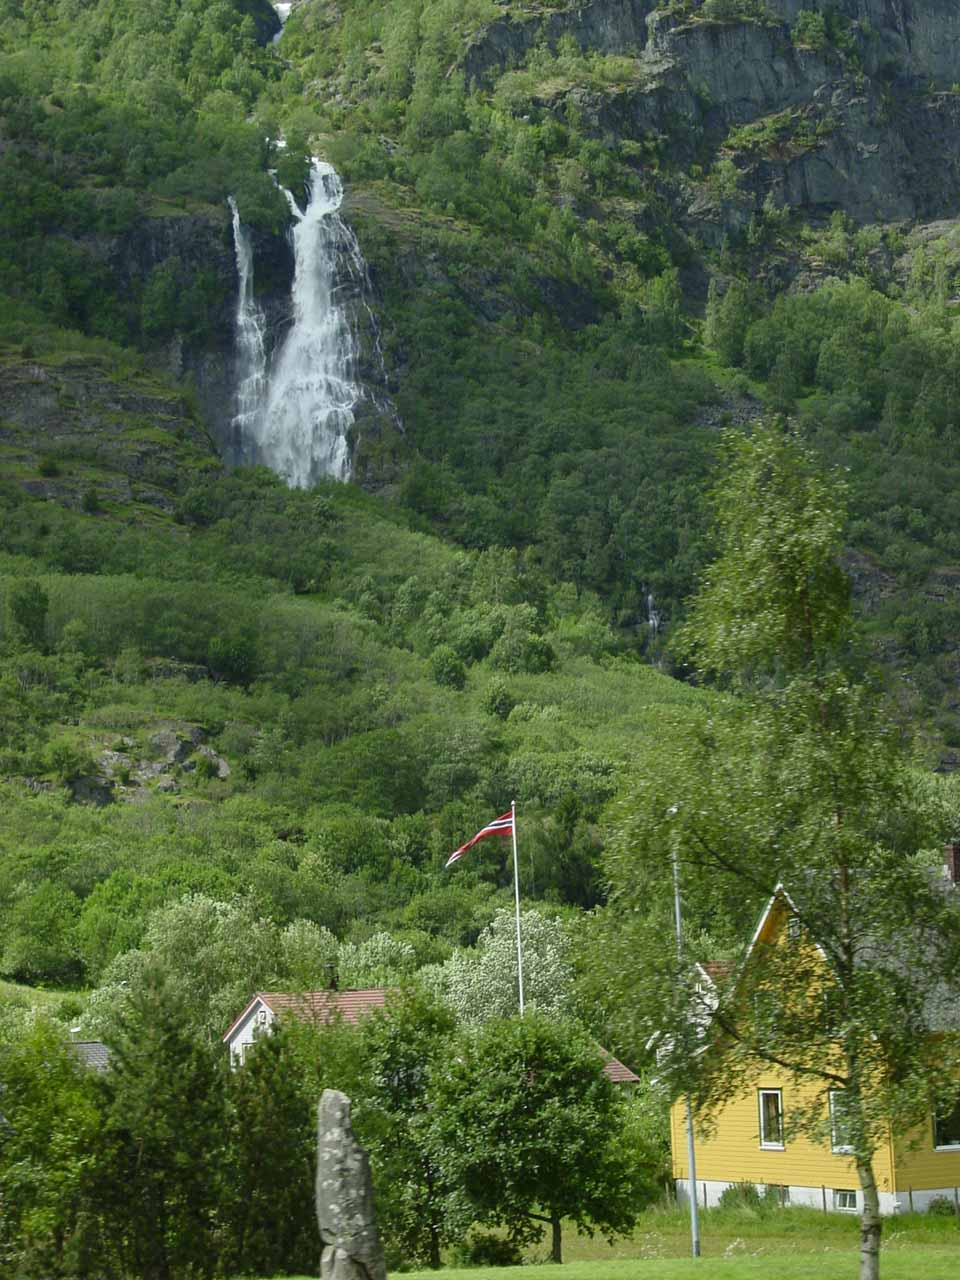 Brekkefossen fronted by some homes of Flamsdalen